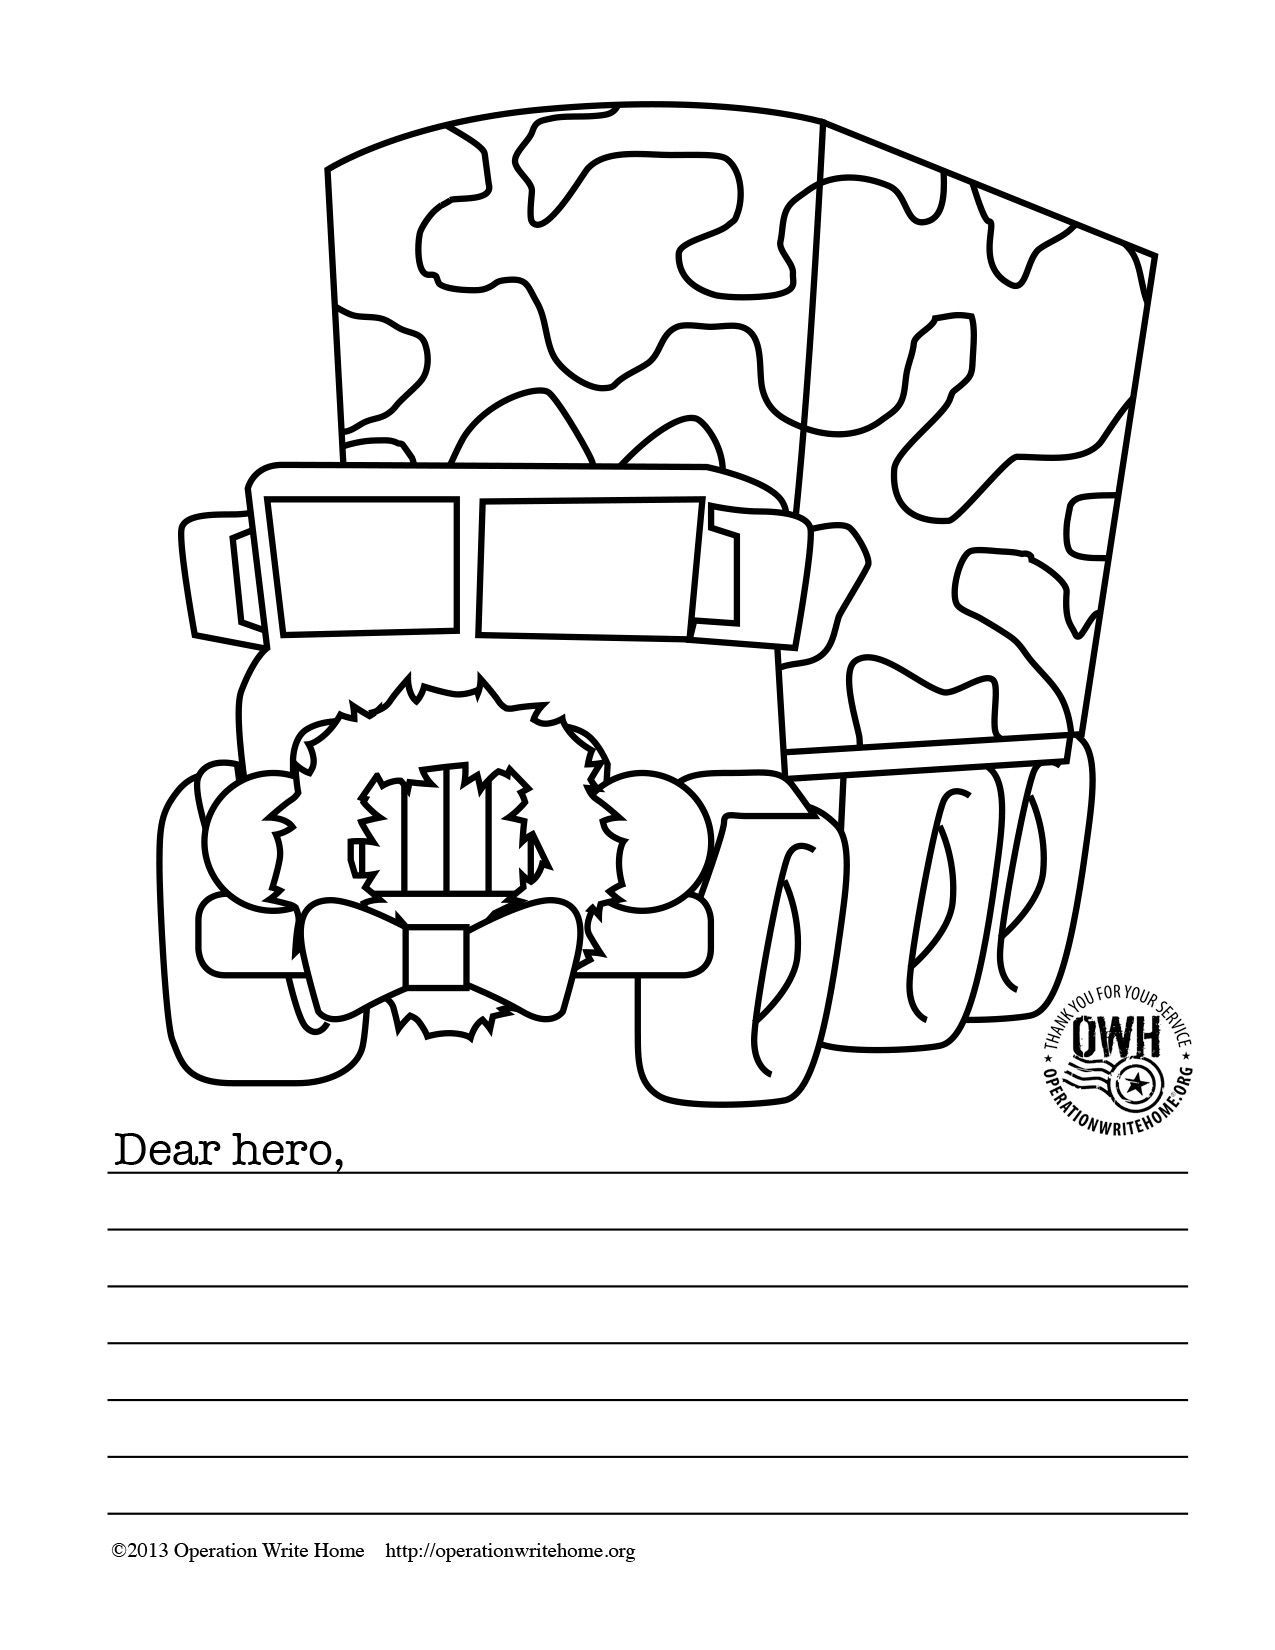 Christmas Coloring Pages For Veterans Christmas Coloring Pages Designs Coloring Books Coloring Pages